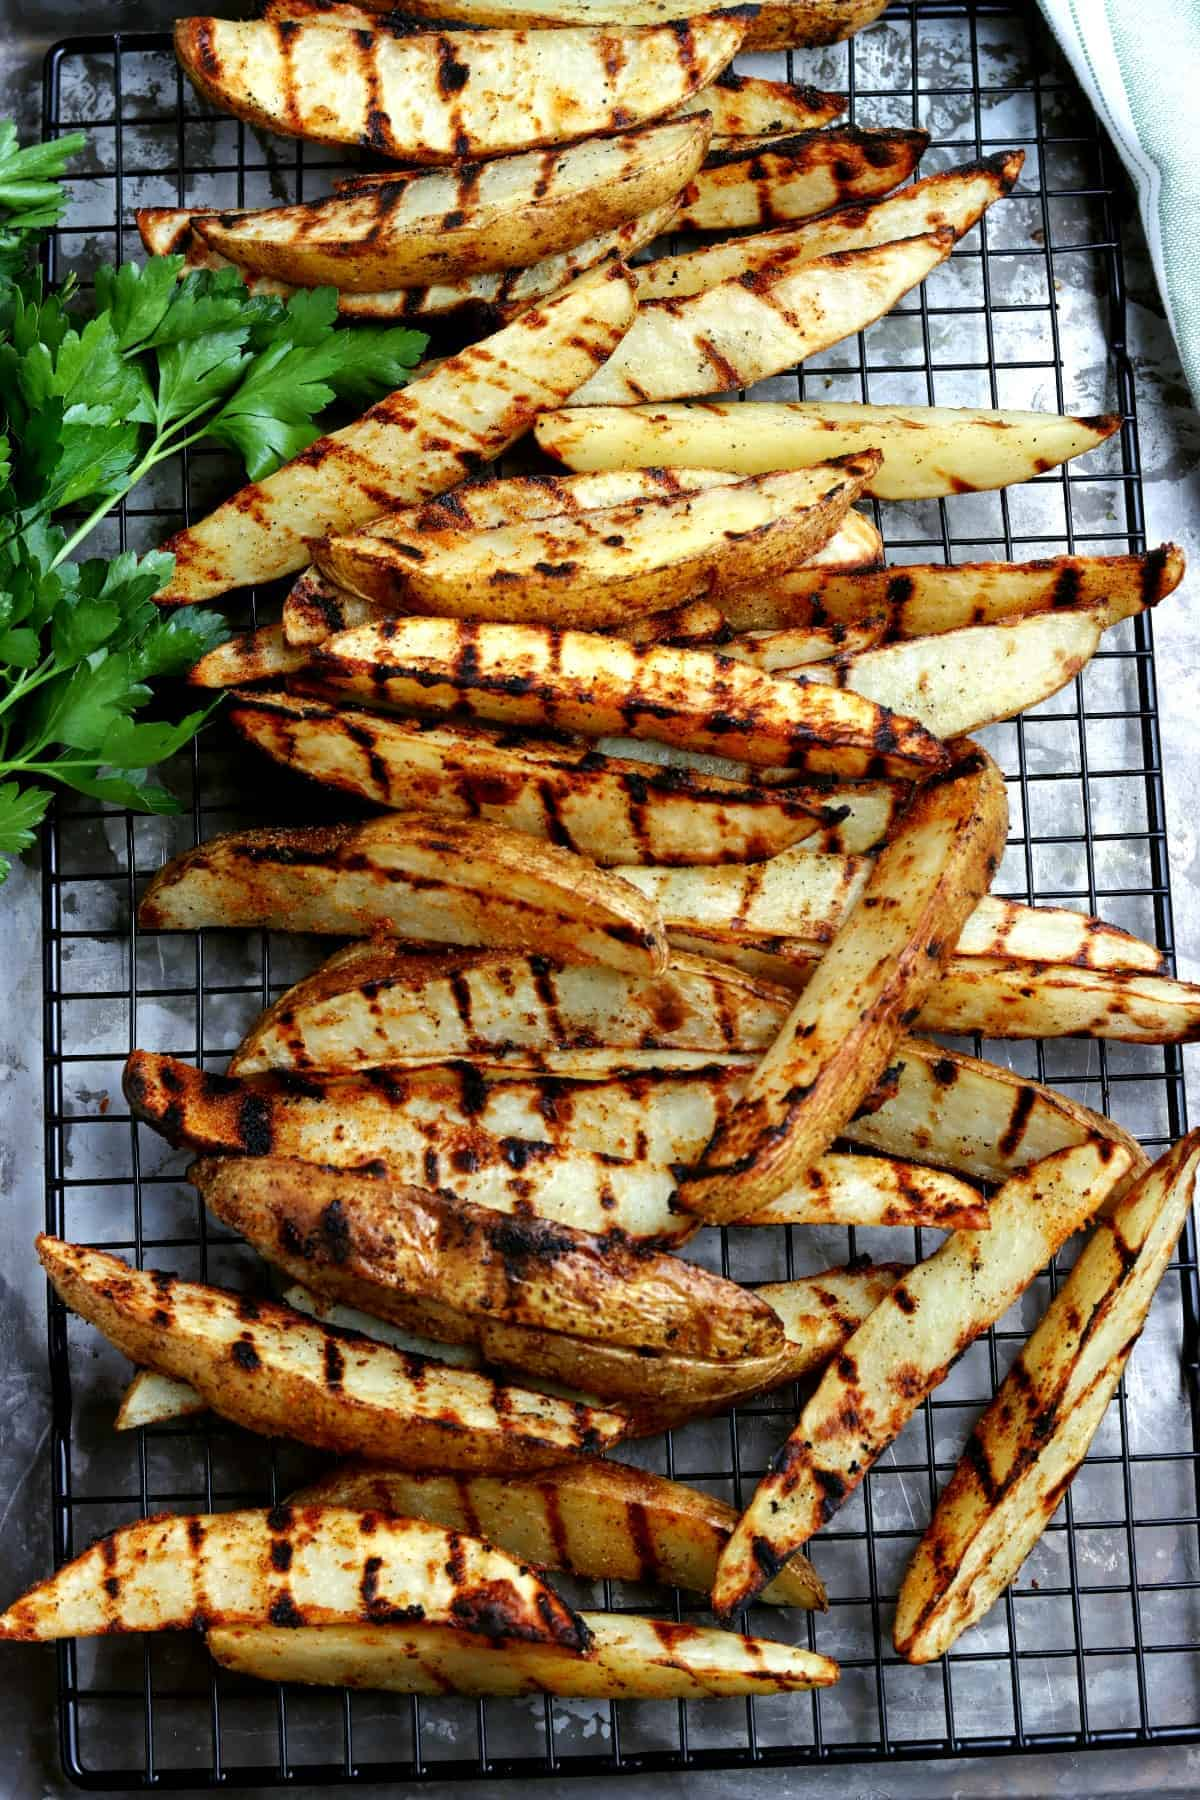 Overhead view of grilled potato wedges side dish on a rack.